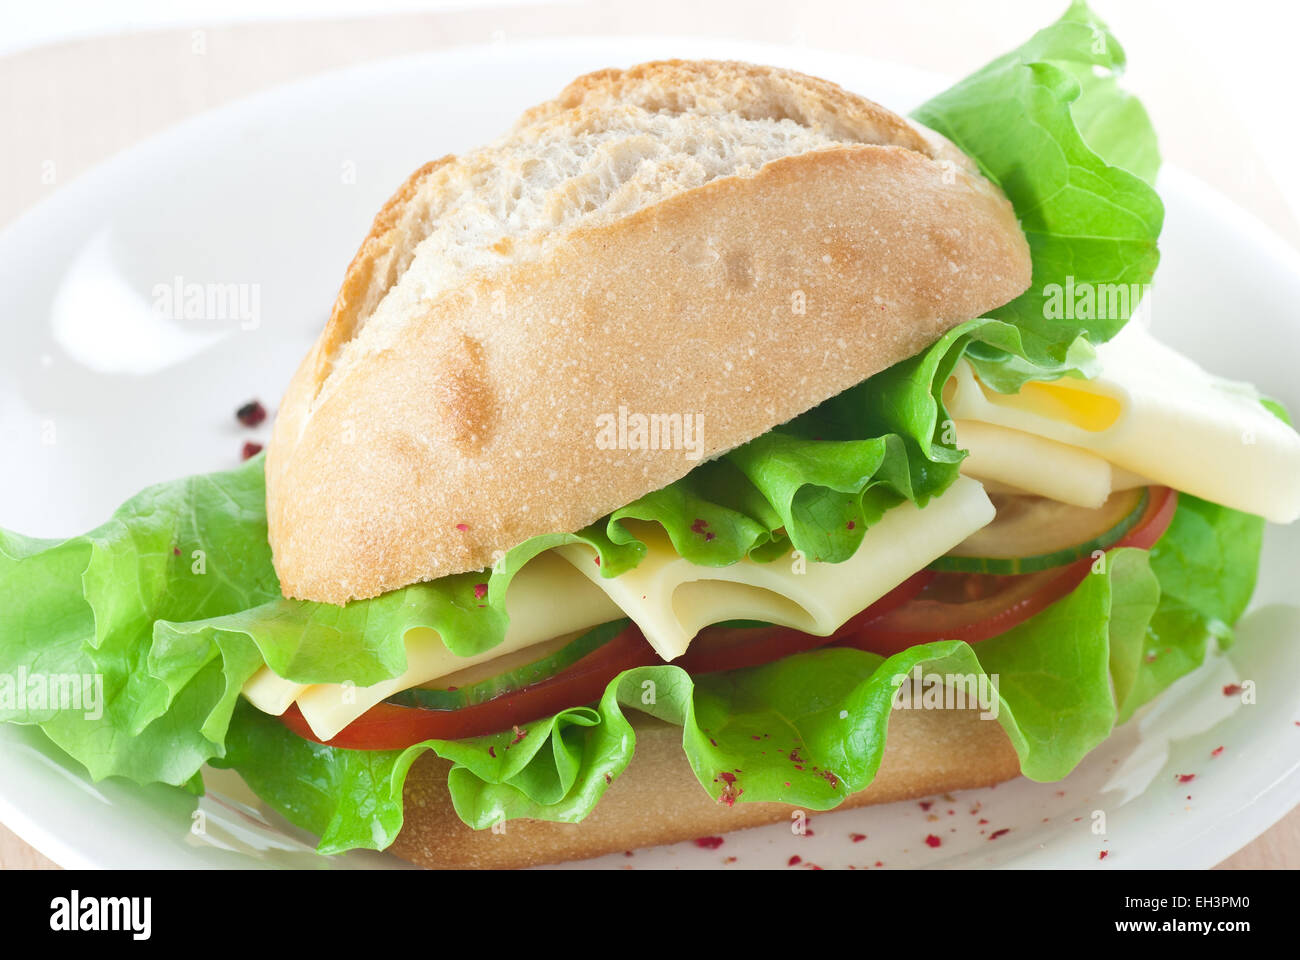 Cheese sandwich with tomato, lettuce and cucumber. - Stock Image